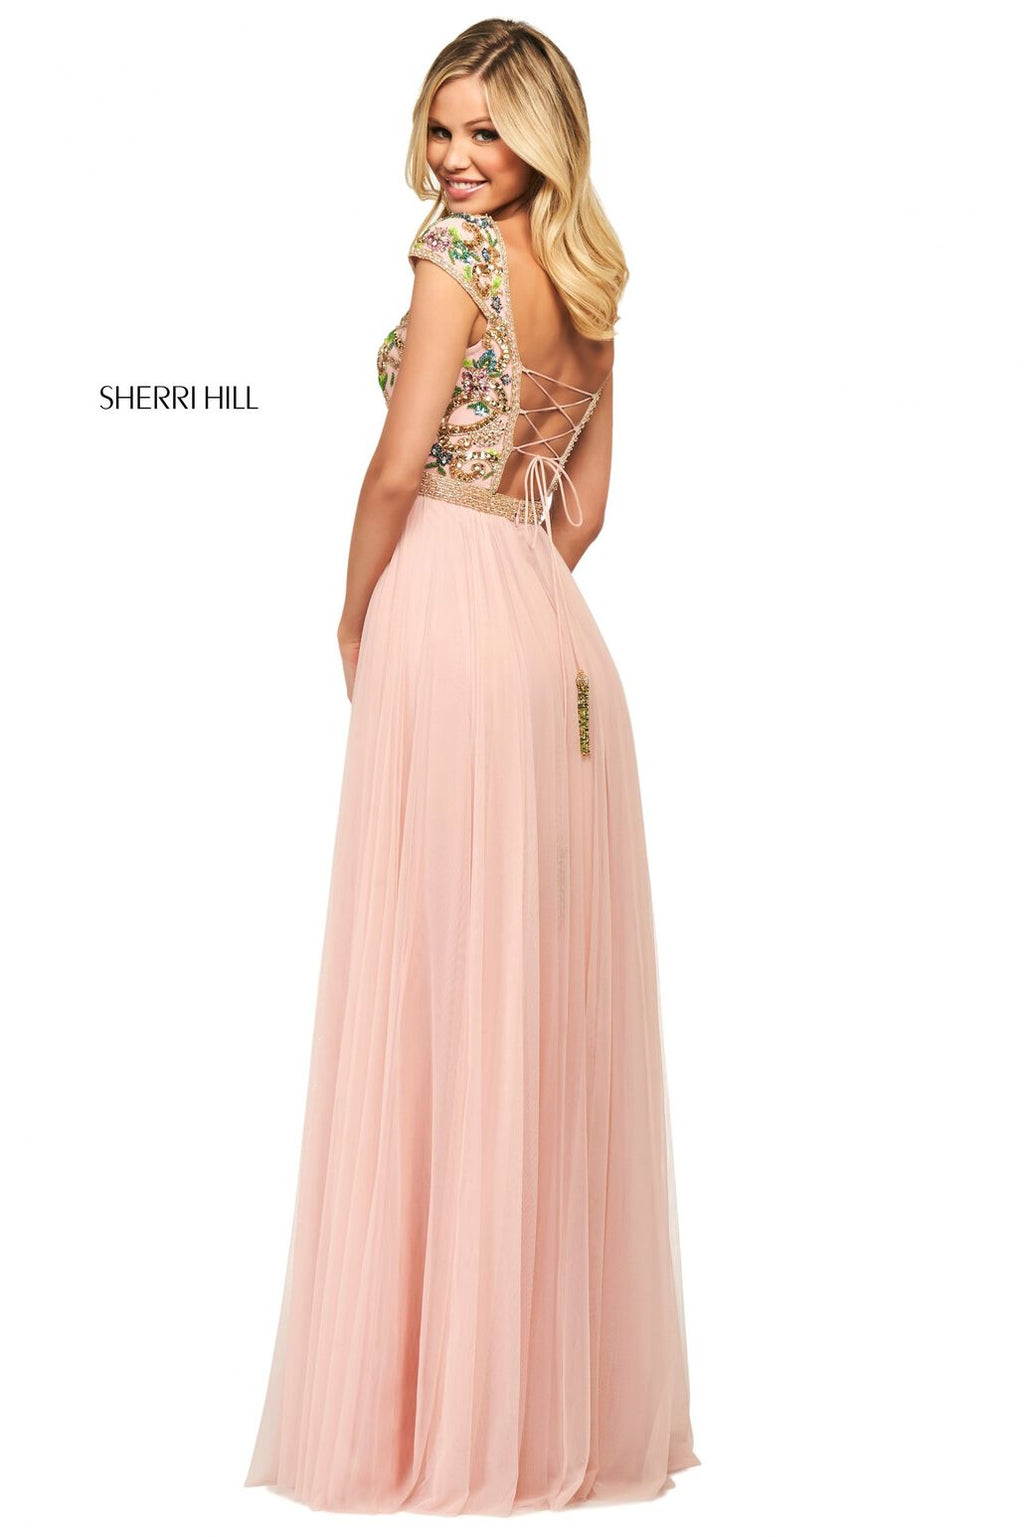 This Sherri Hill 53543 A-line gown in blush/multi features a beaded bodice with cap sleeves, an open lace up back and a chiffon skirt.